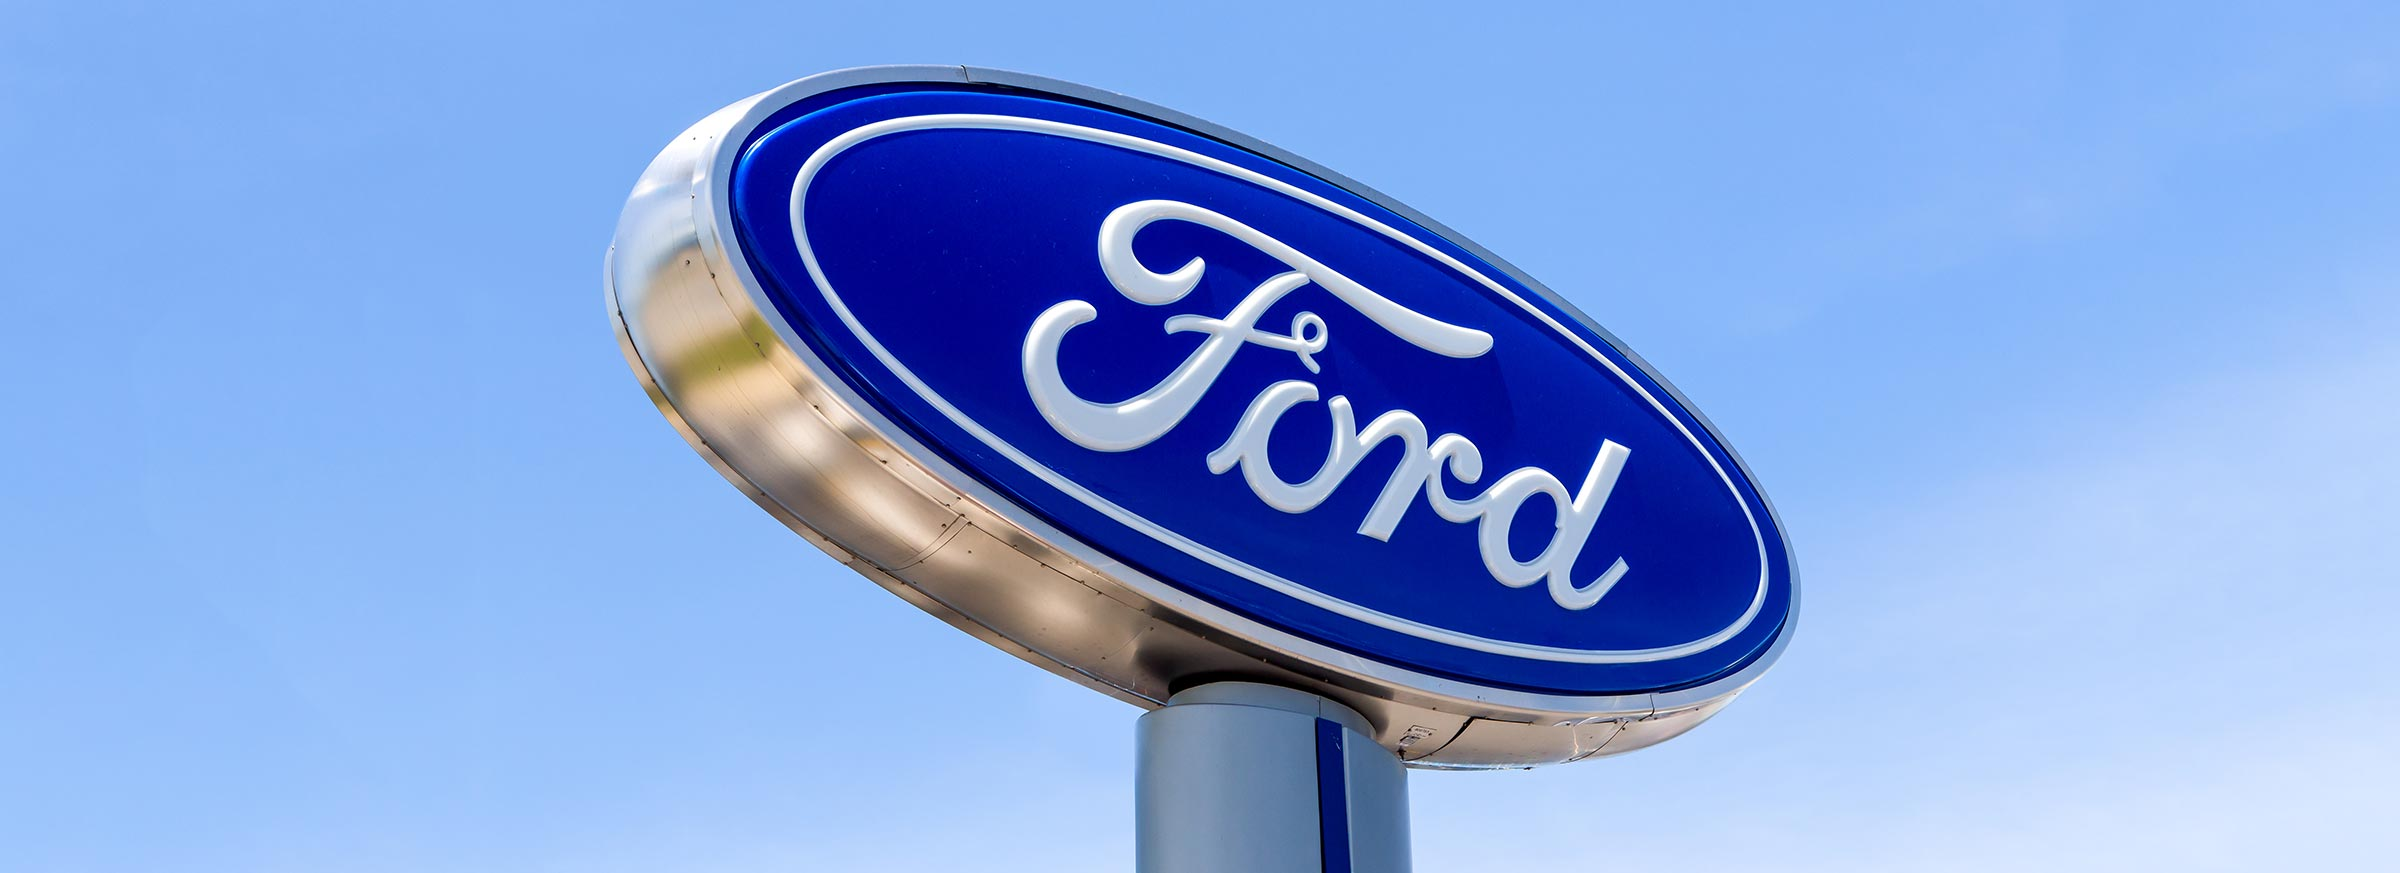 San Diego Ford Dealers >> Directions To Mossy Ford From Chula Vista Mossy Ford